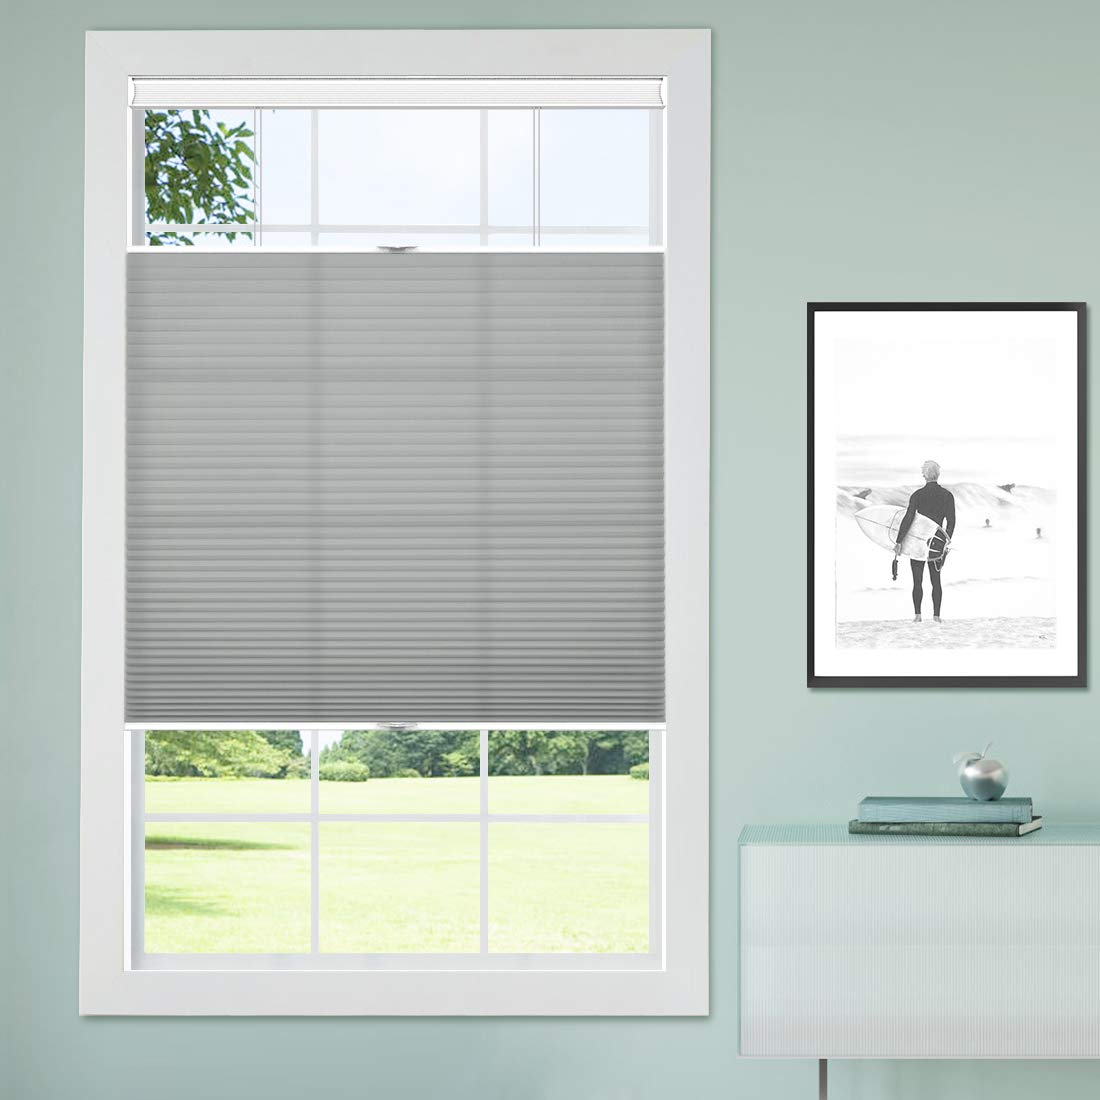 "Keego Cellular Shades Cordless Top Down Bottom Up Honeycomb Blinds, Custom Cut to Size Window Blind, 25"" W x 48"" H, Grey"